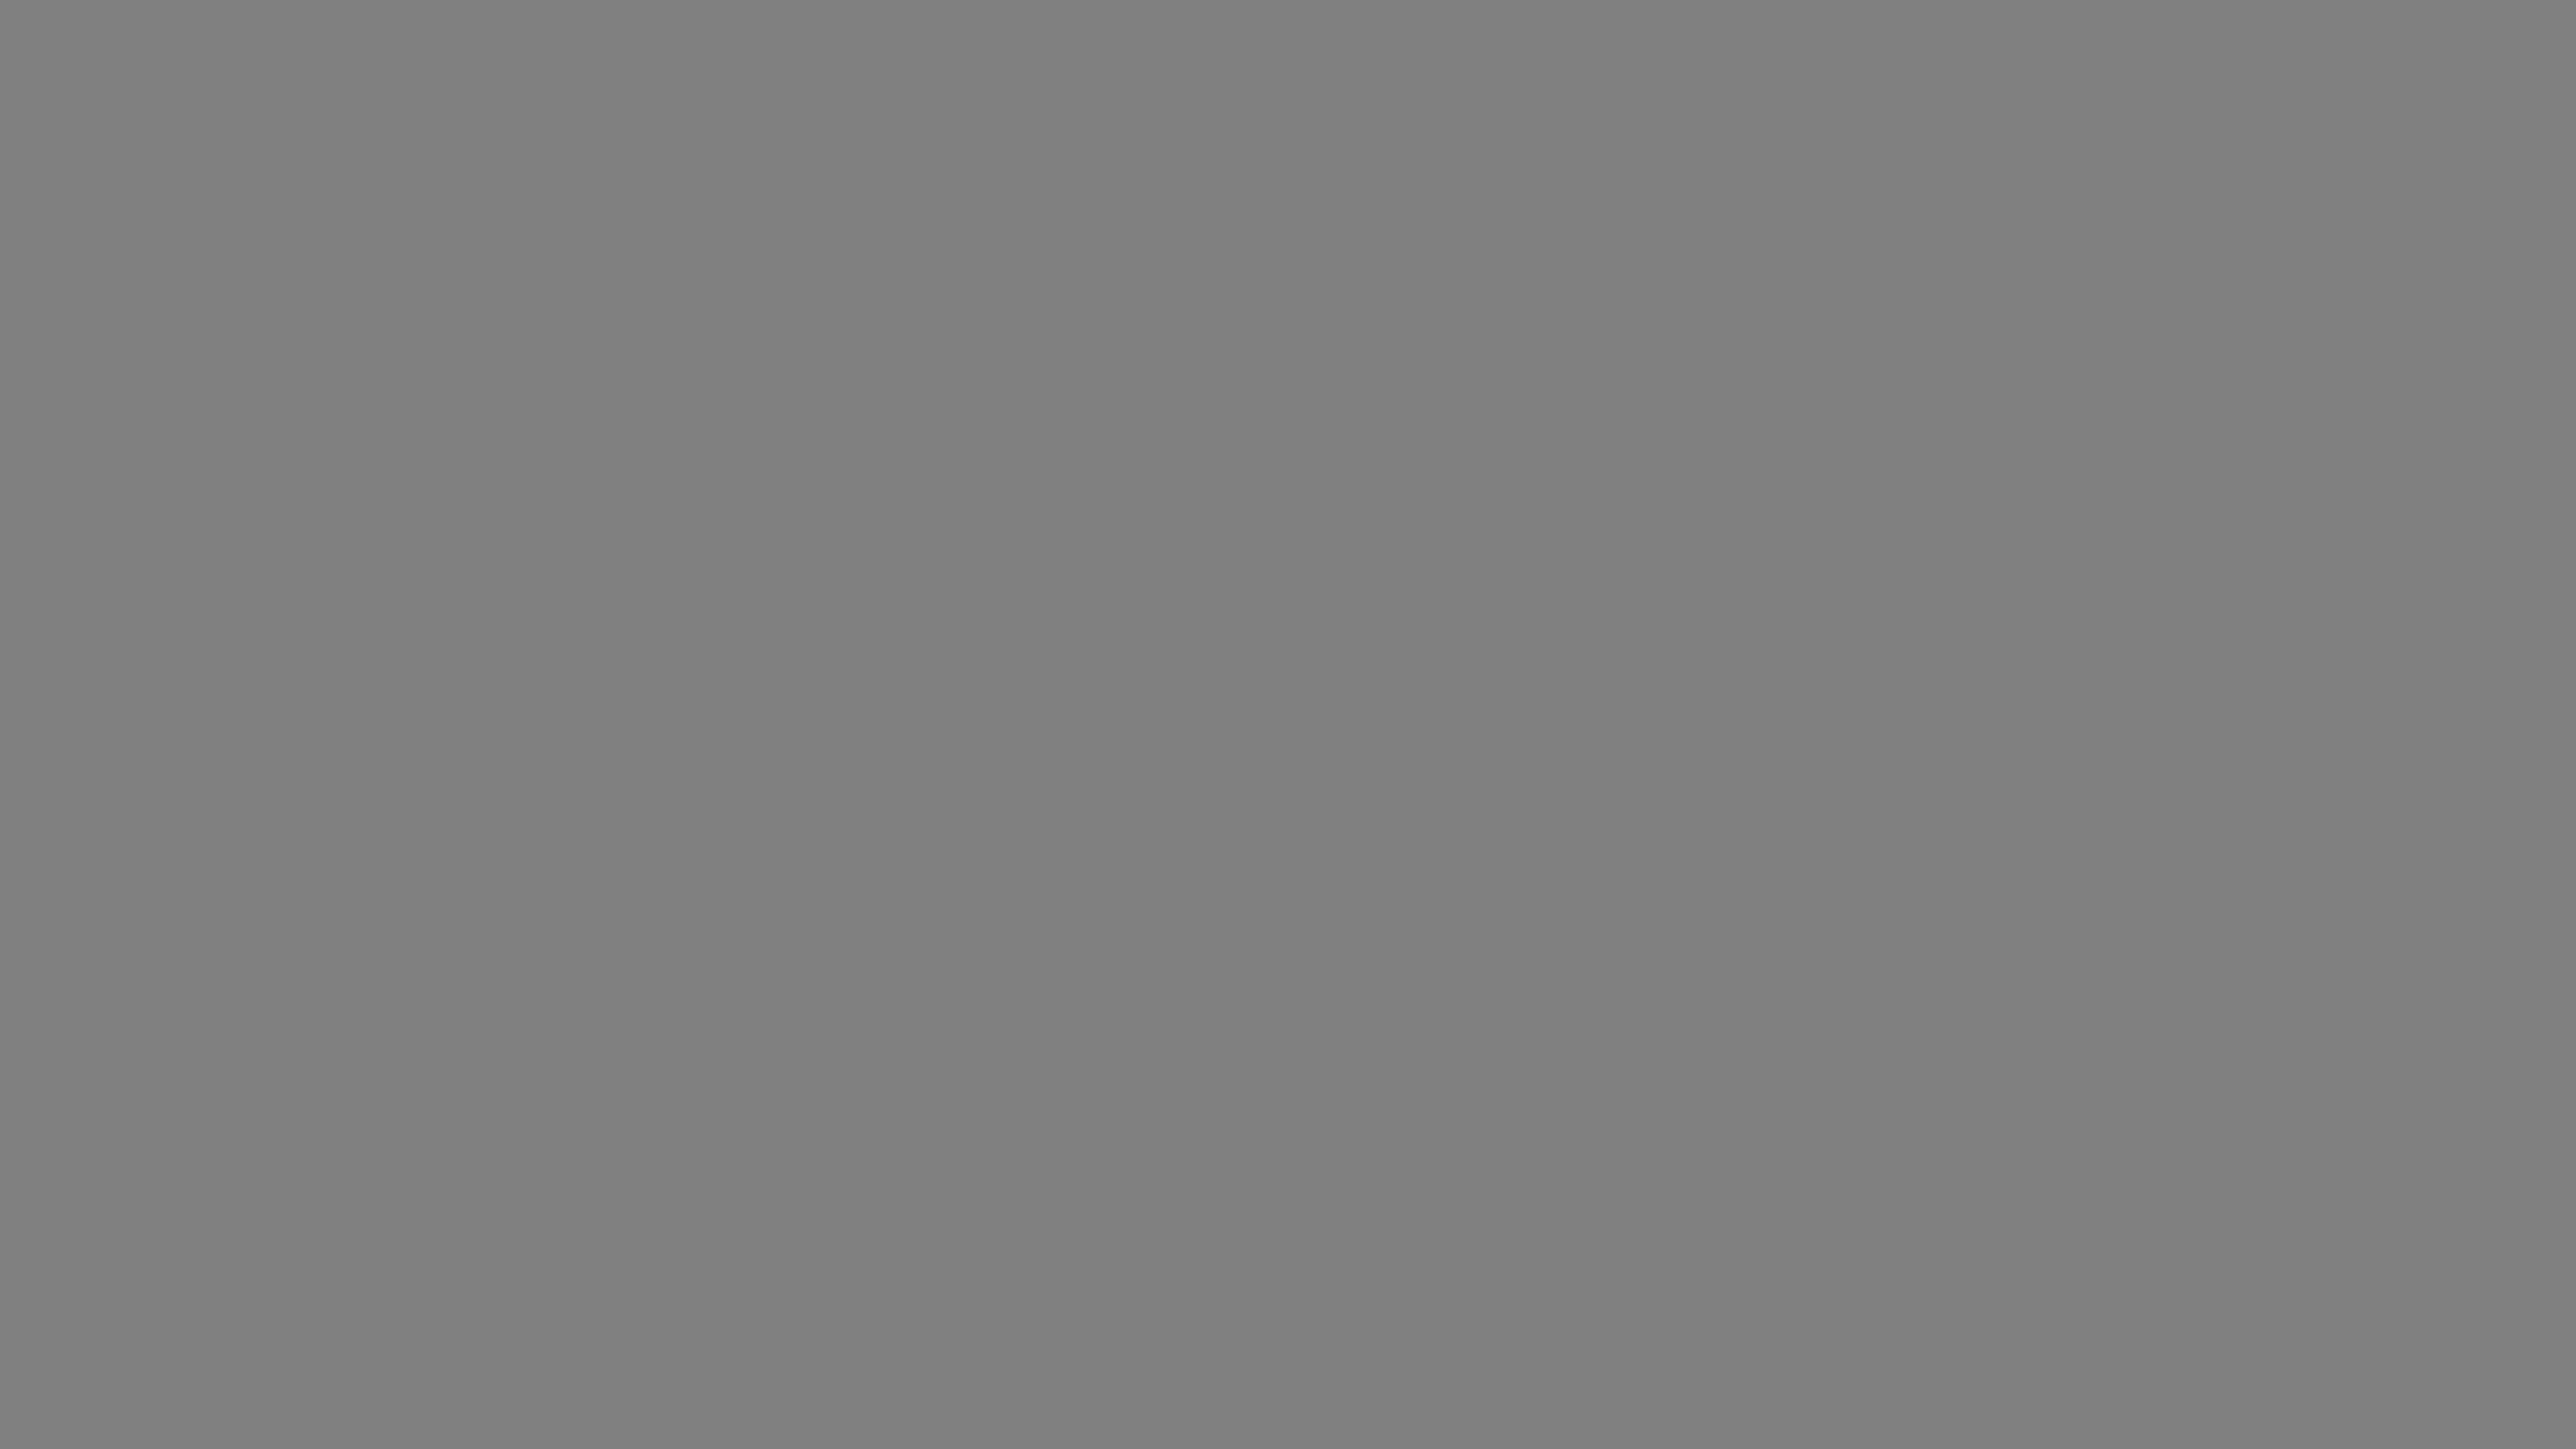 4096x2304 Gray Solid Color Background